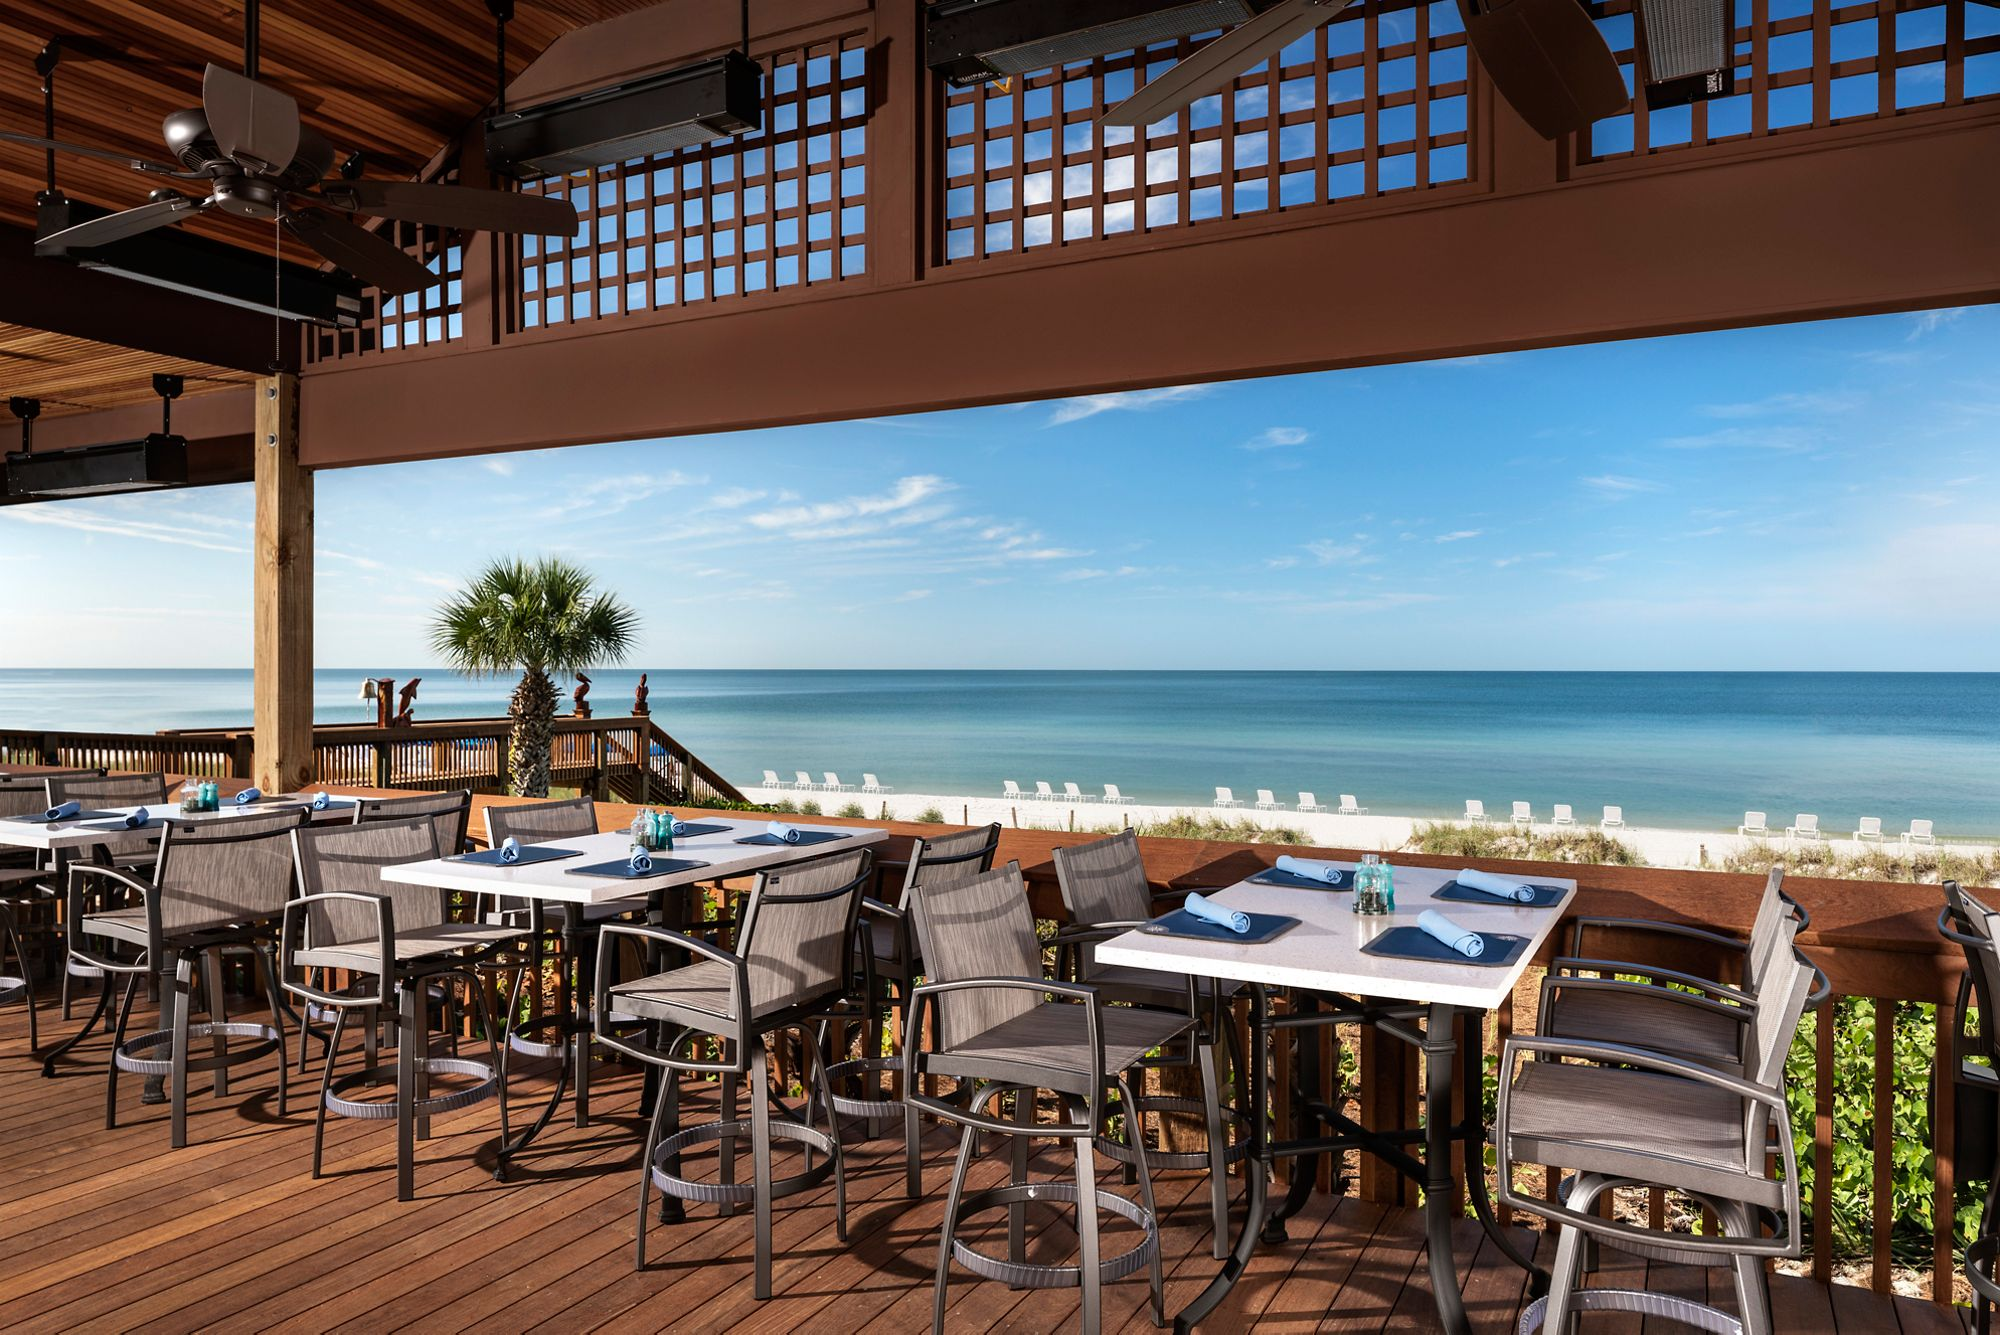 Naples Fl Seafood Restaurant On The Water The Ritz